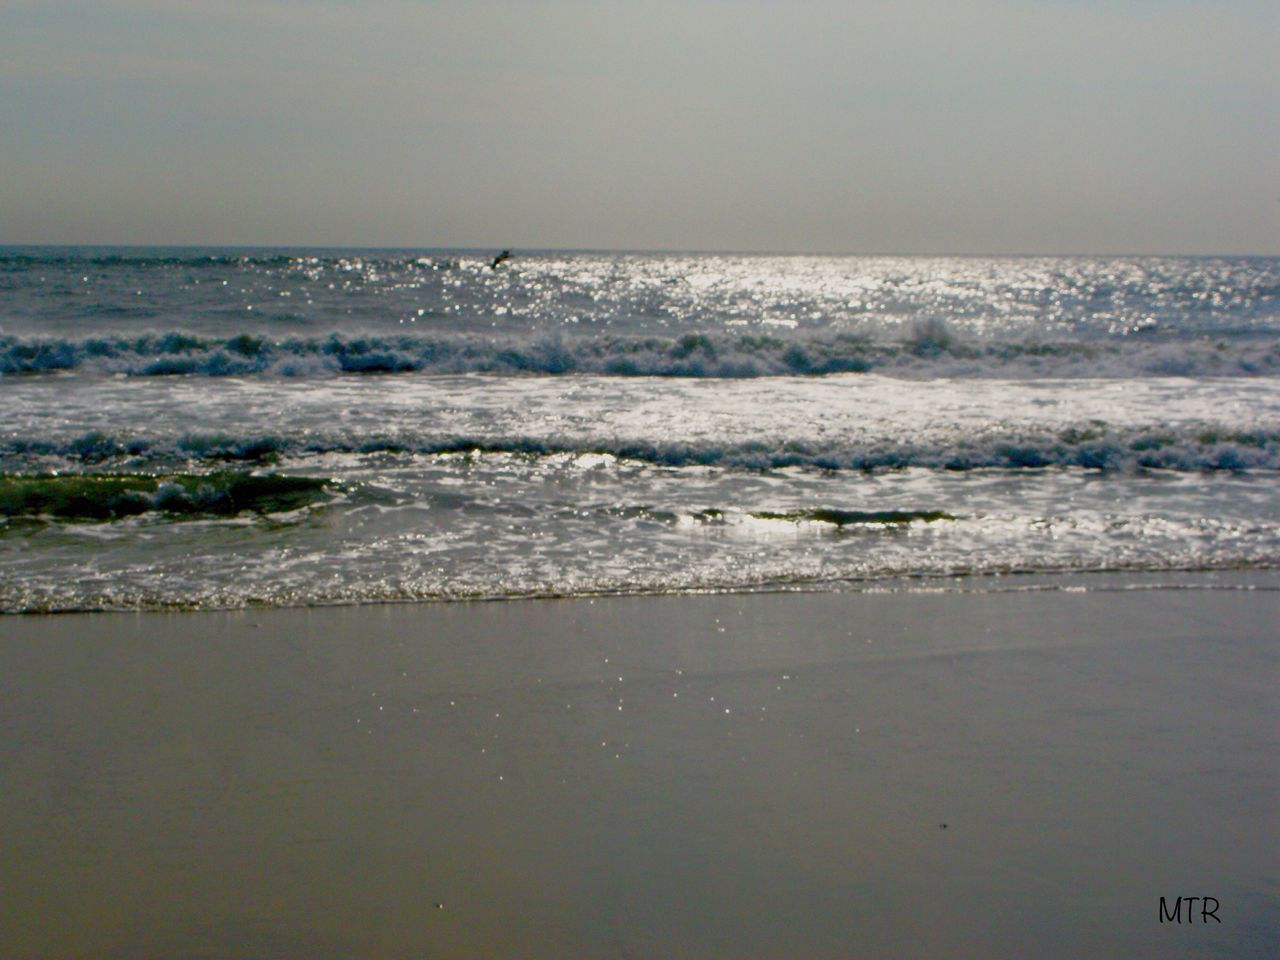 Sea Beach Nature Beauty In Nature Tranquility Wave Water Sky Scenics Horizon Over Water Clear Sky No People Outdoors Day Fireislandnationalseashore LongIslandNY SouthShore Beach Smithpoint Beach Summer's Coming Sand Nature Summers